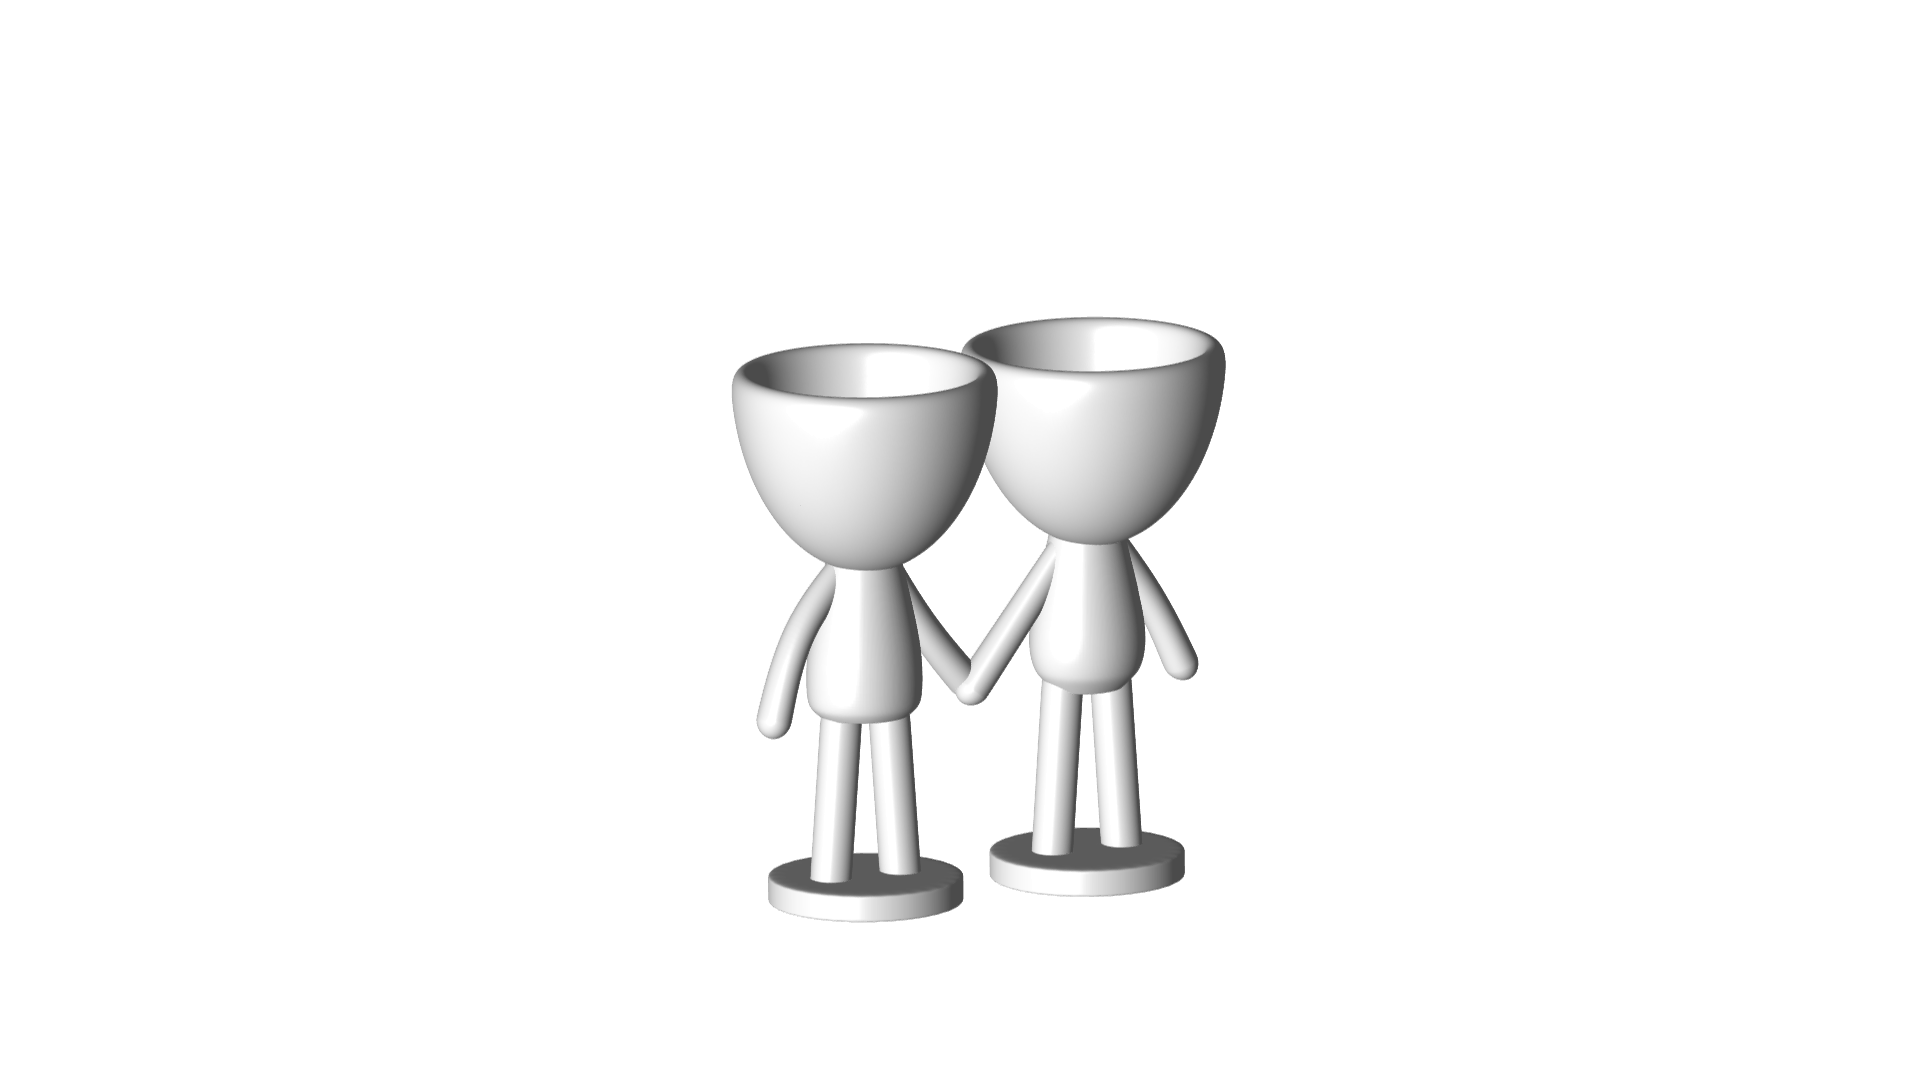 Enamorados_N6_Blanco_1.png Download free STL file N° 6 VASES ROBERT IN LOVE - N° 6 VASE 8 FLOWERPOT ROBERT IN LOVE • Template to 3D print, PRODUSTL56